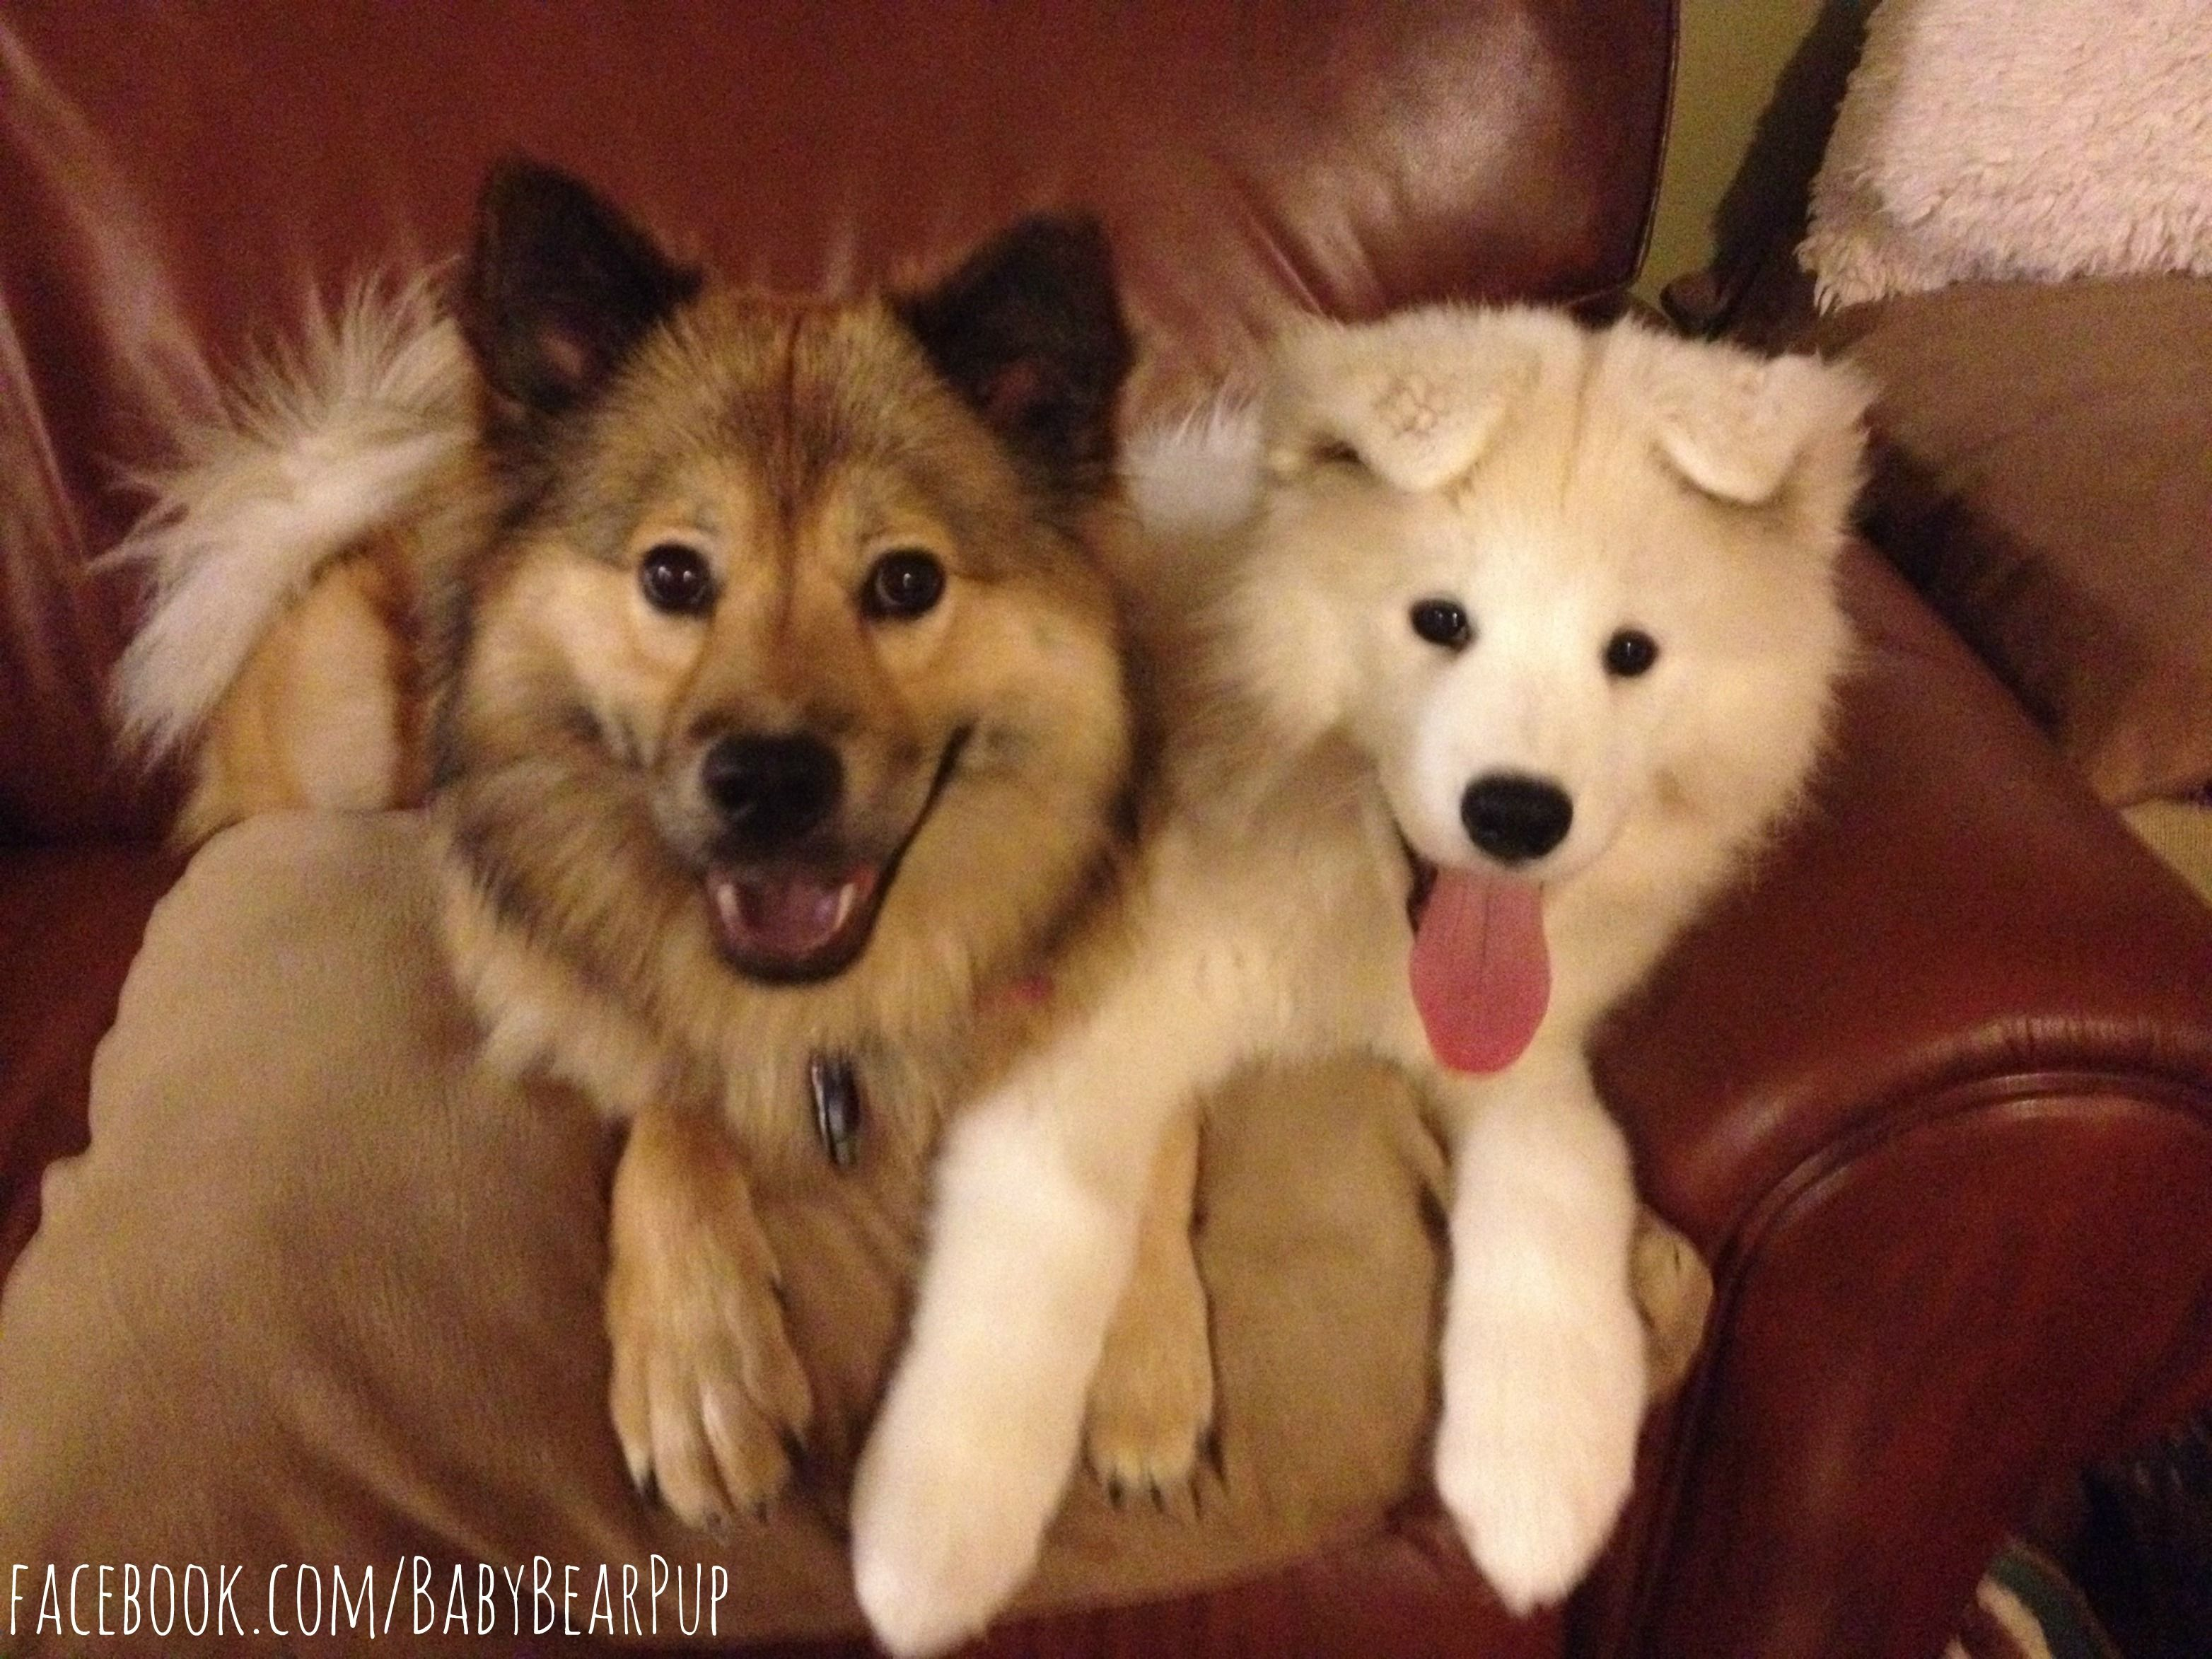 Best Friends Baby Bear Winston They Are A Keeshond Chow Mix